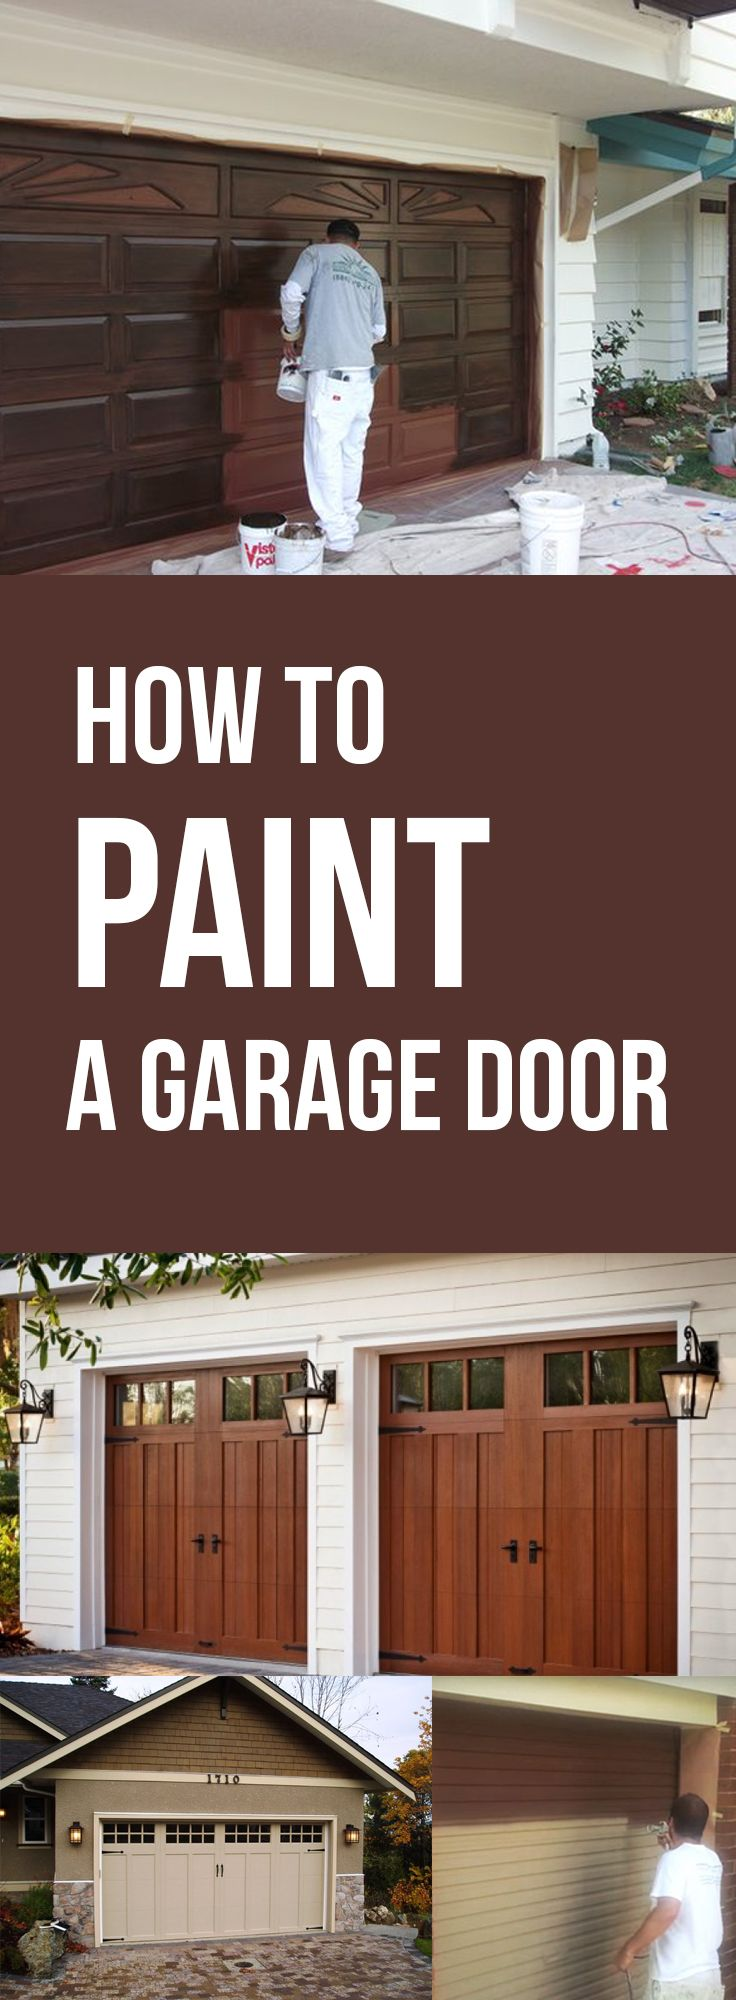 painted garage doors ideas - 25 best Garage paint ideas on Pinterest